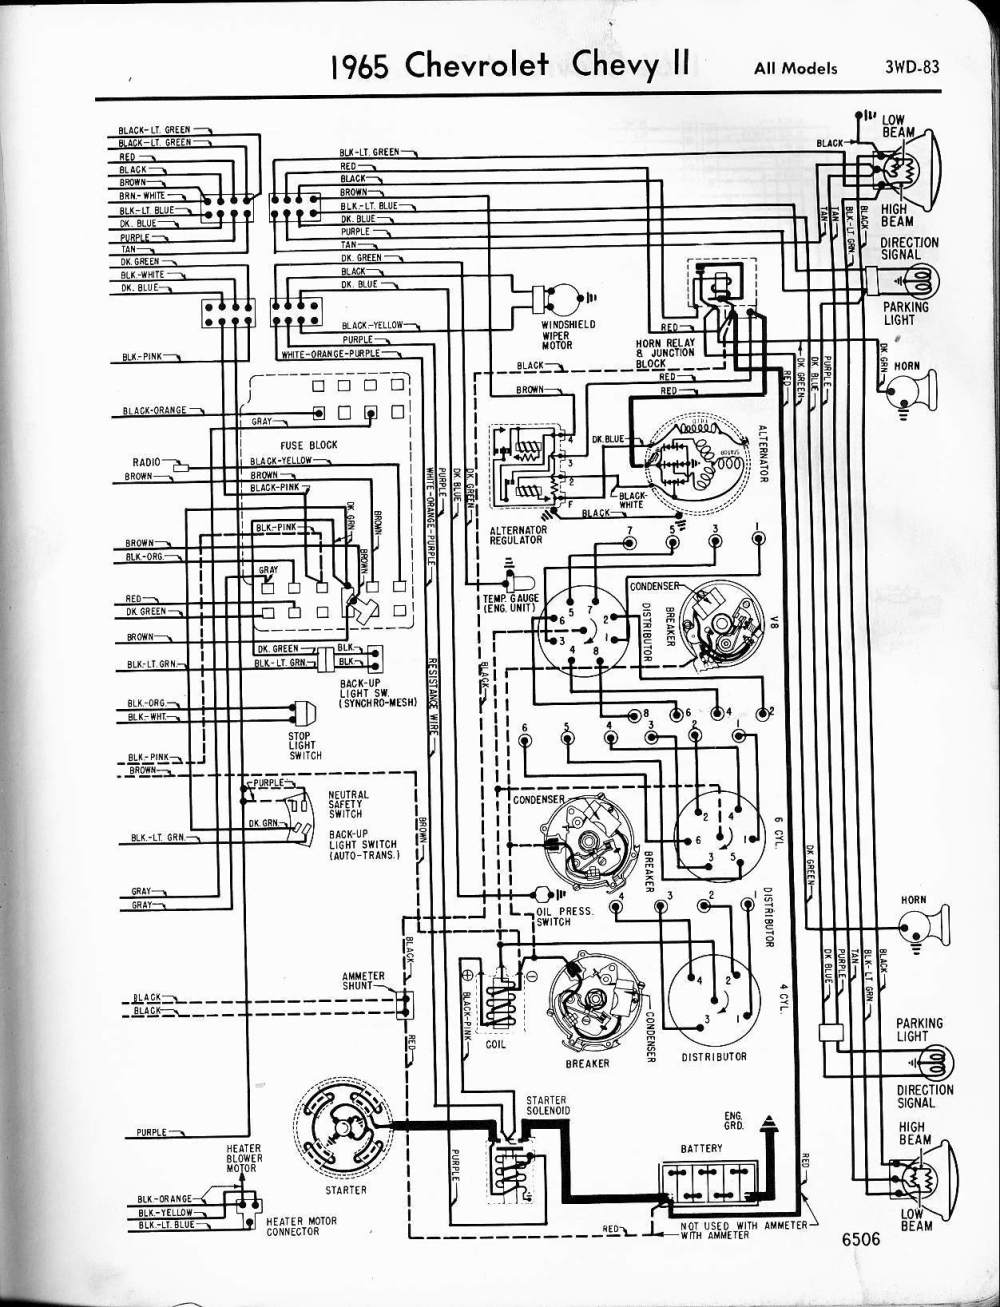 1965 Chevy Ii Wiring Diagram